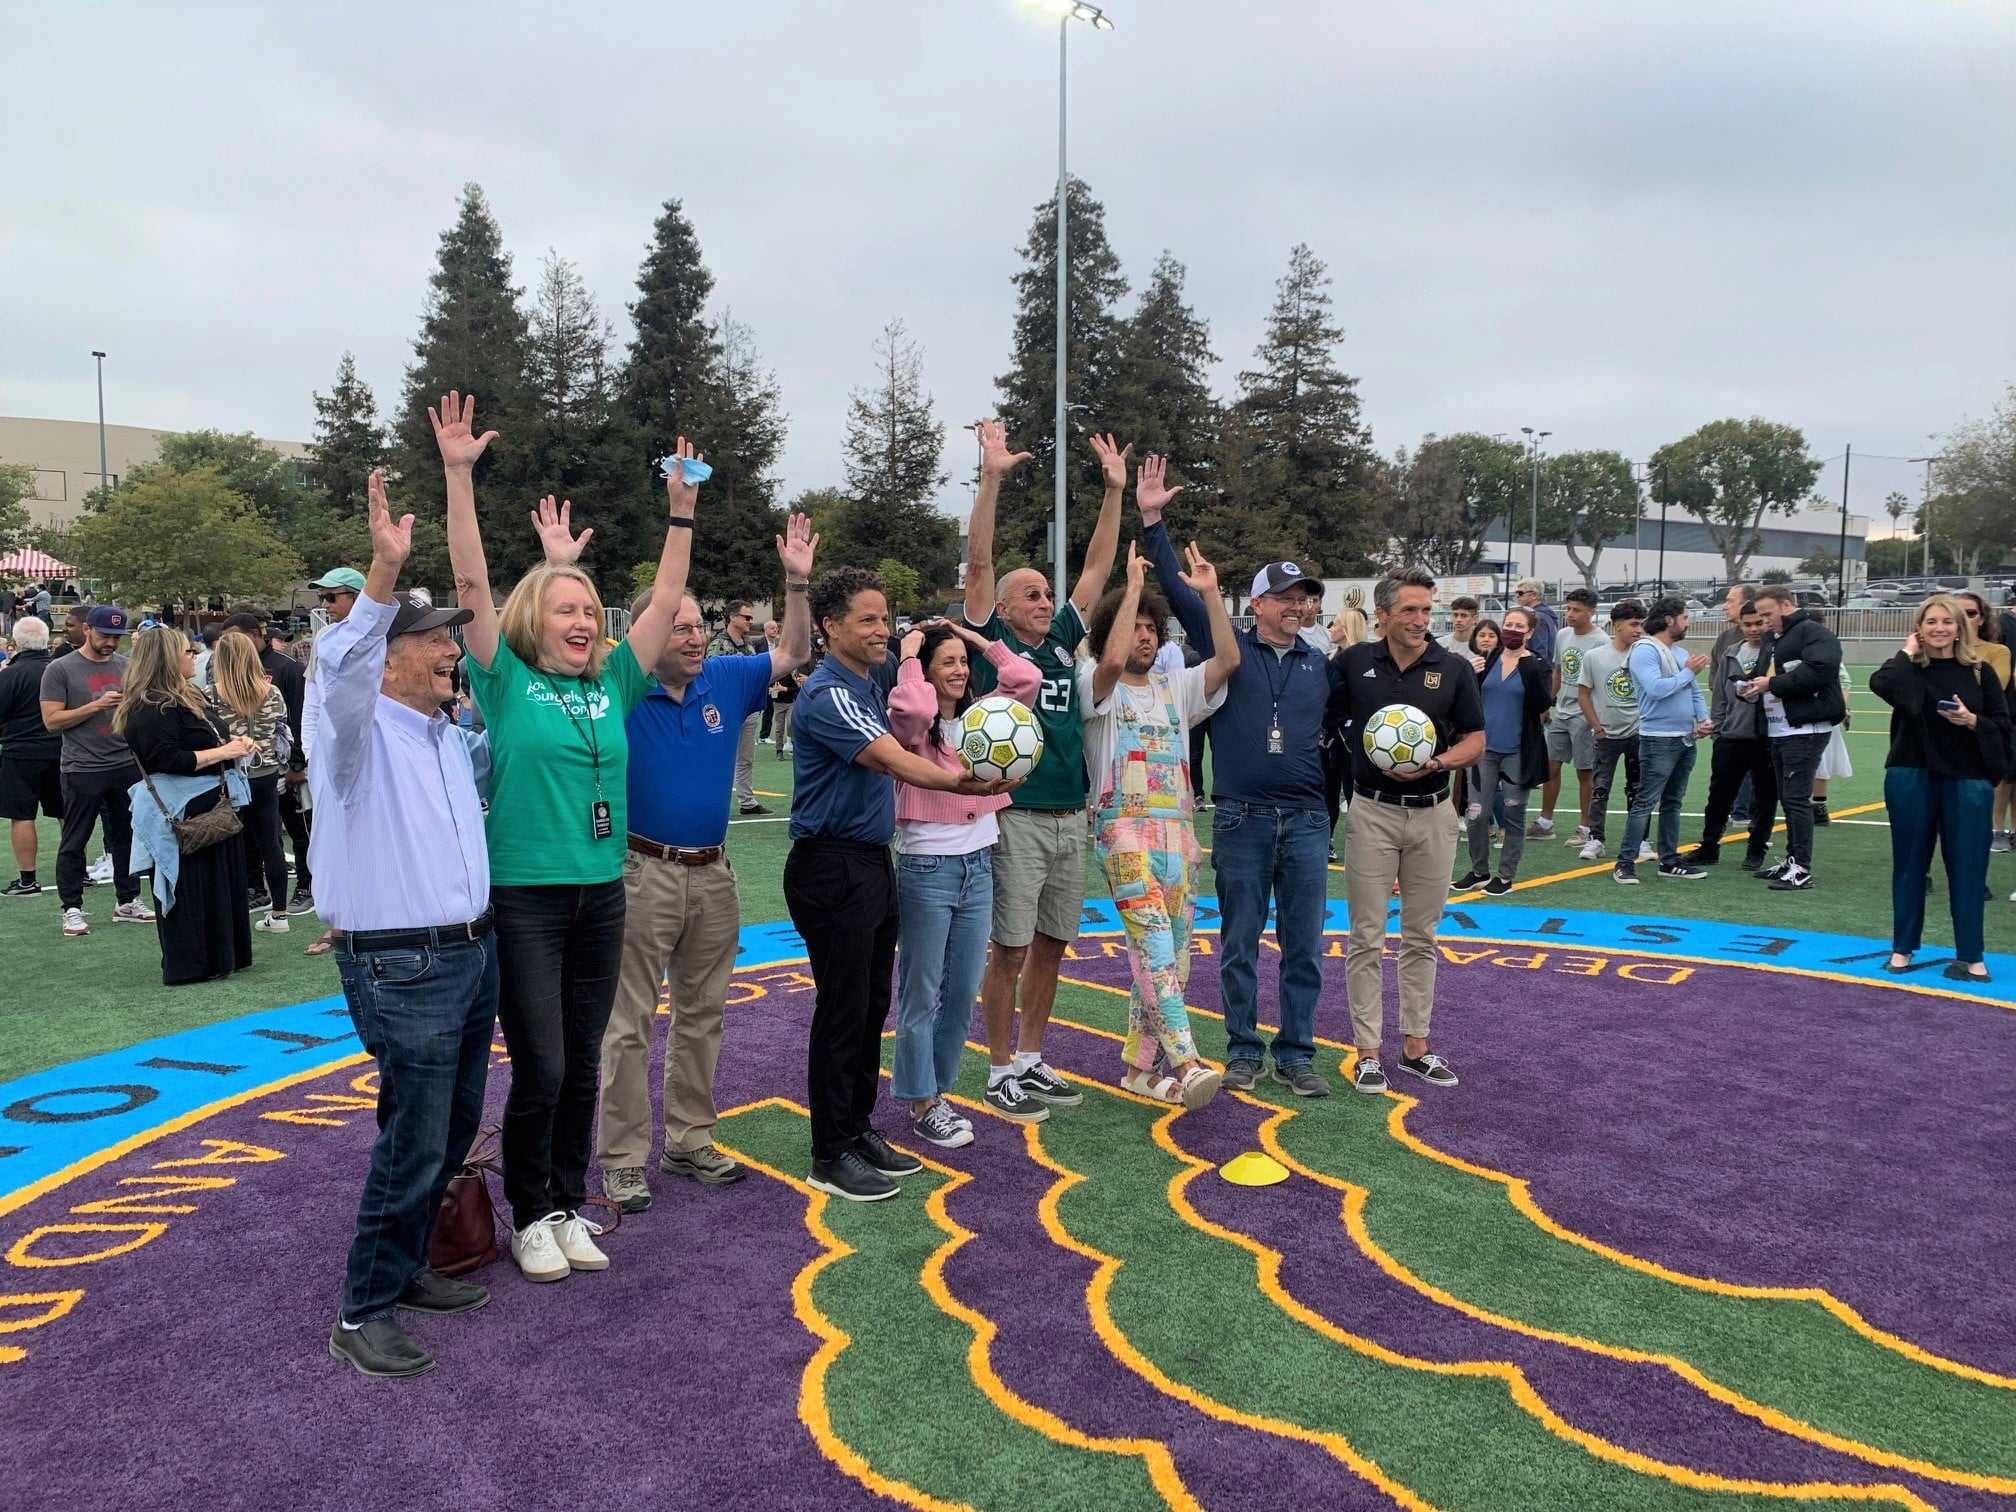 Participants celebrate opening of new soccer field at Westwood Recreation Center